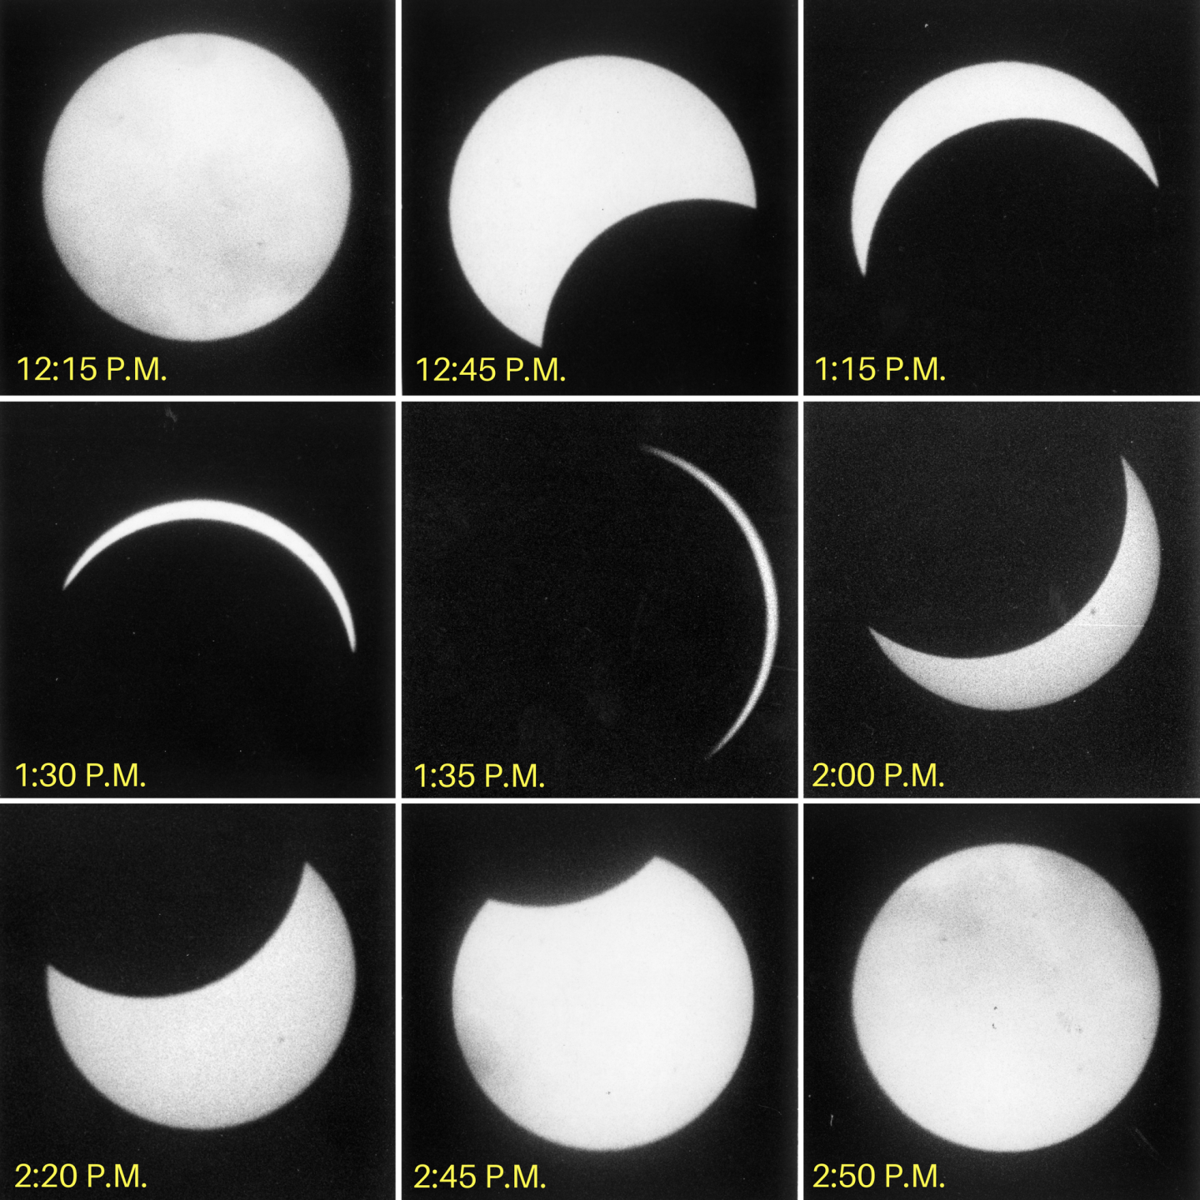 1970 eclipse sequence